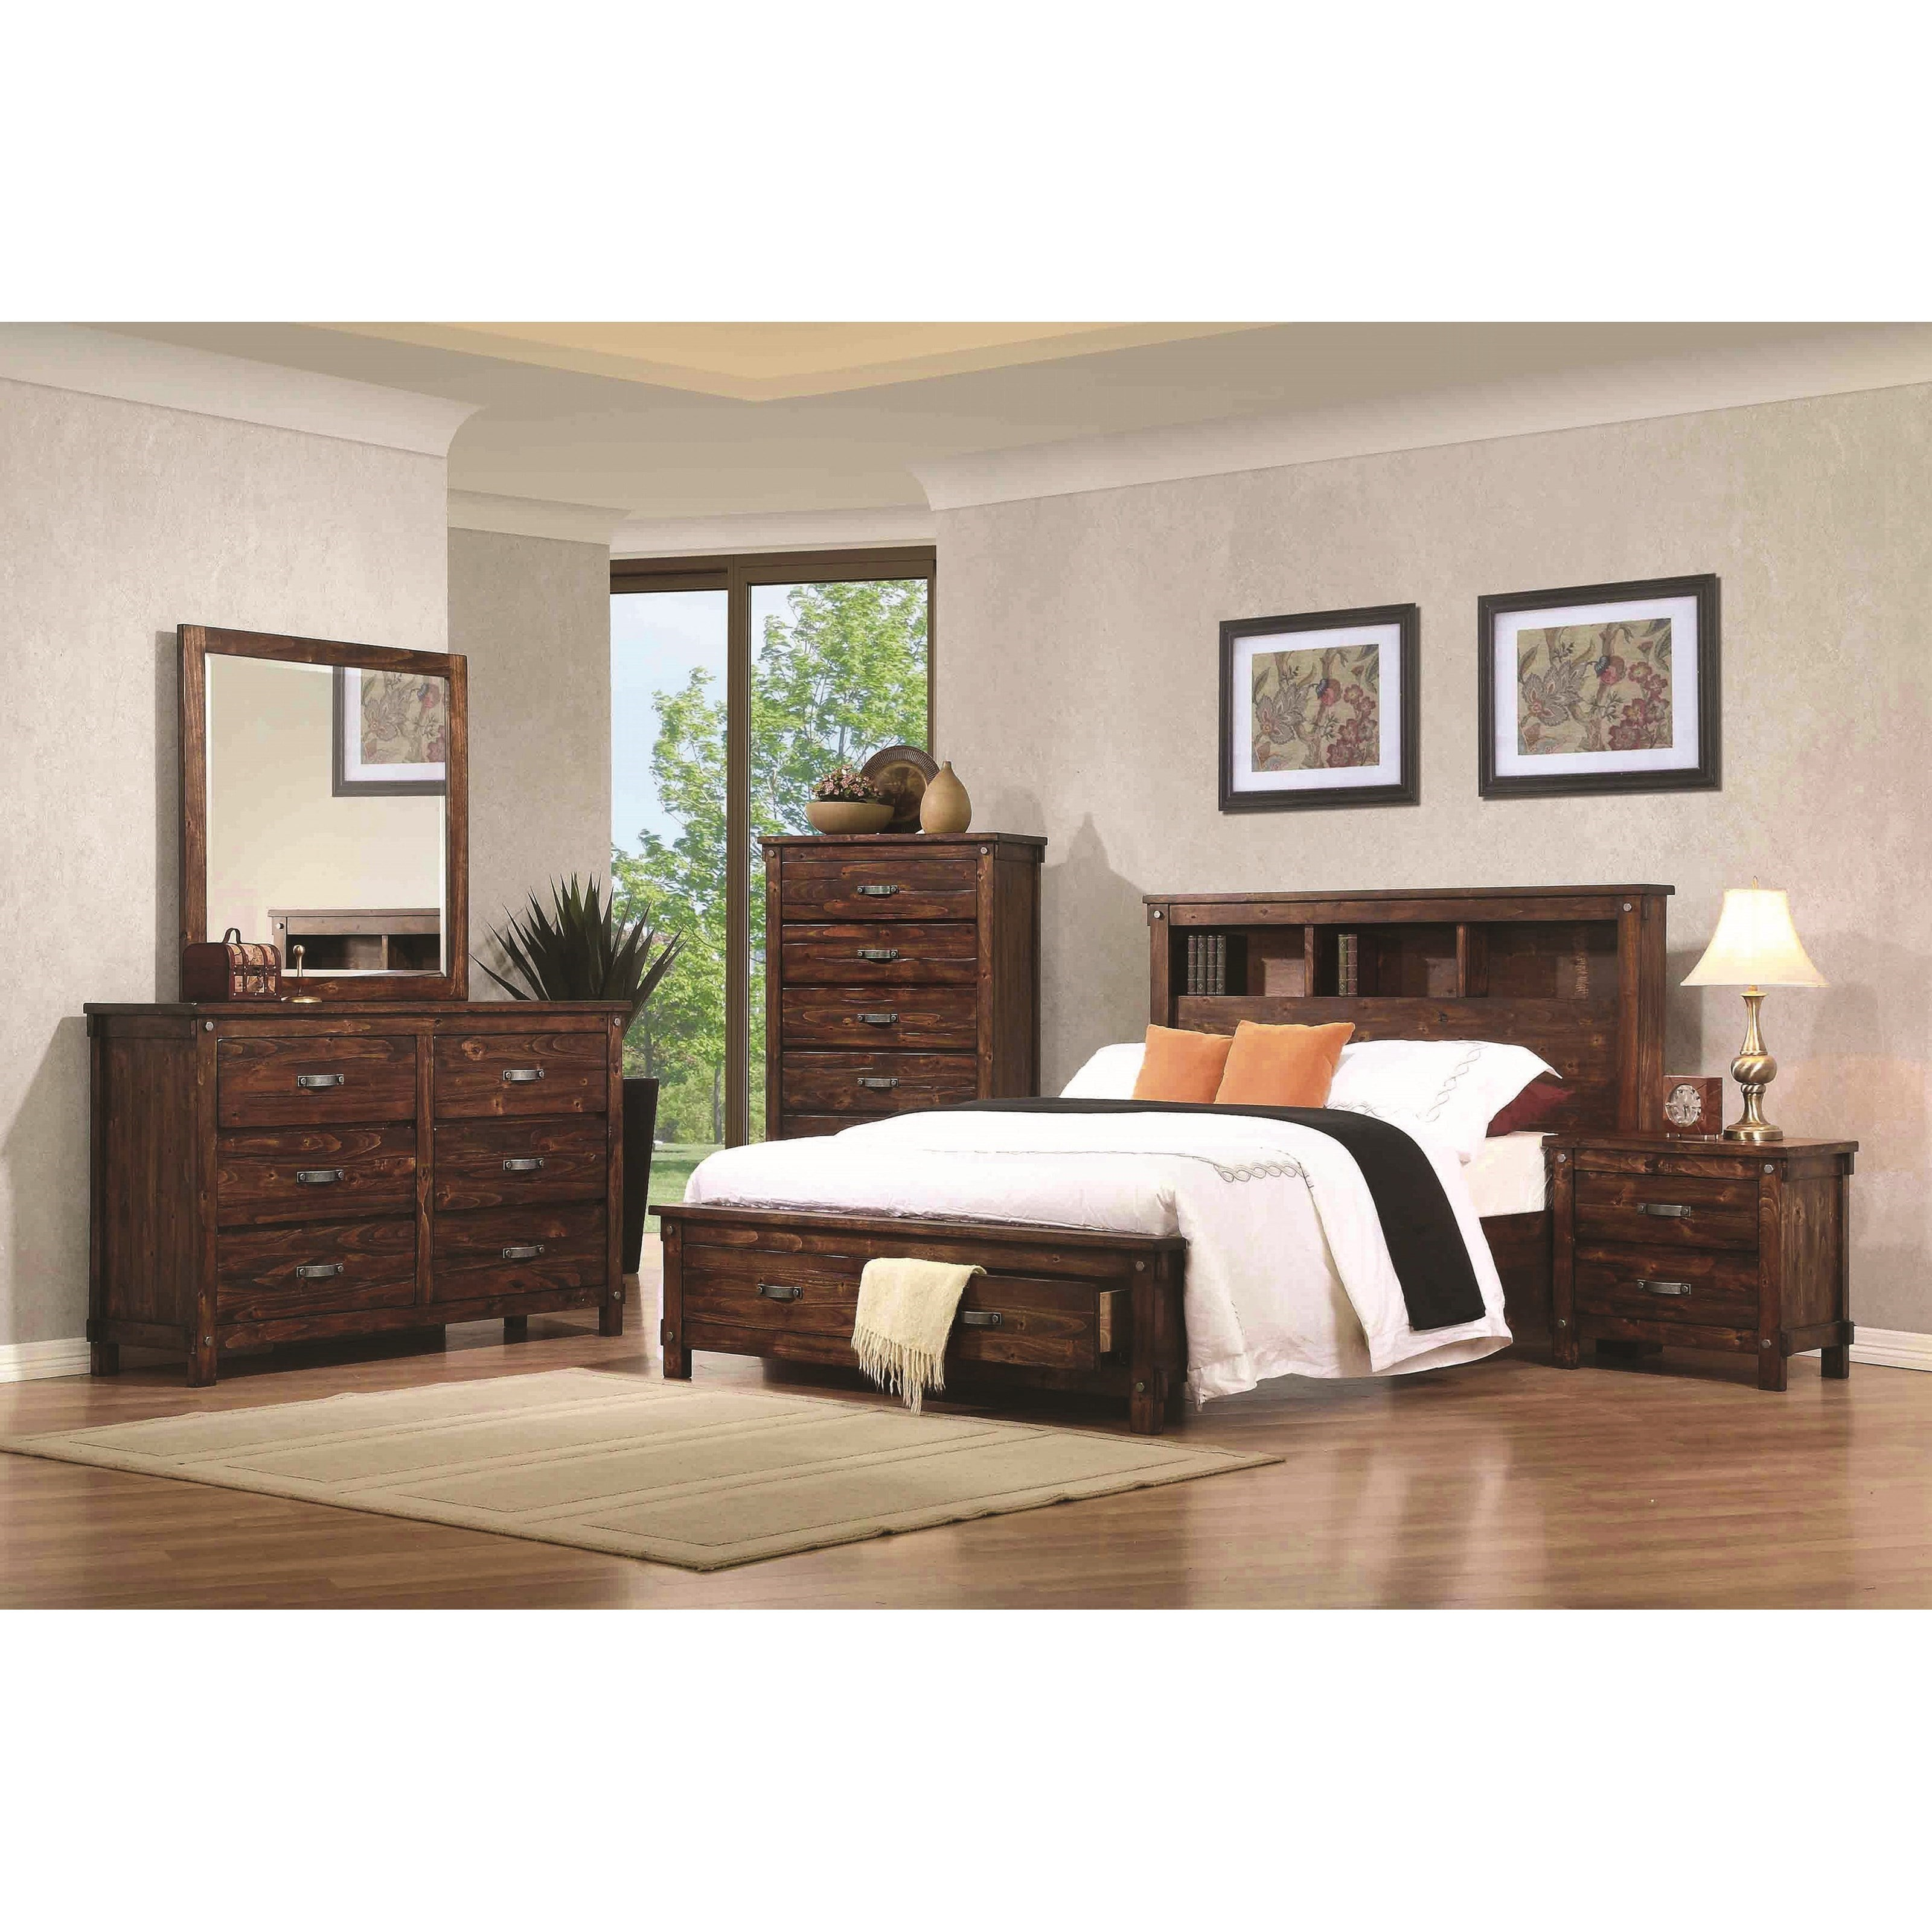 Coaster Noble Queen Bedroom Group Value City Furniture Bedroom Groups